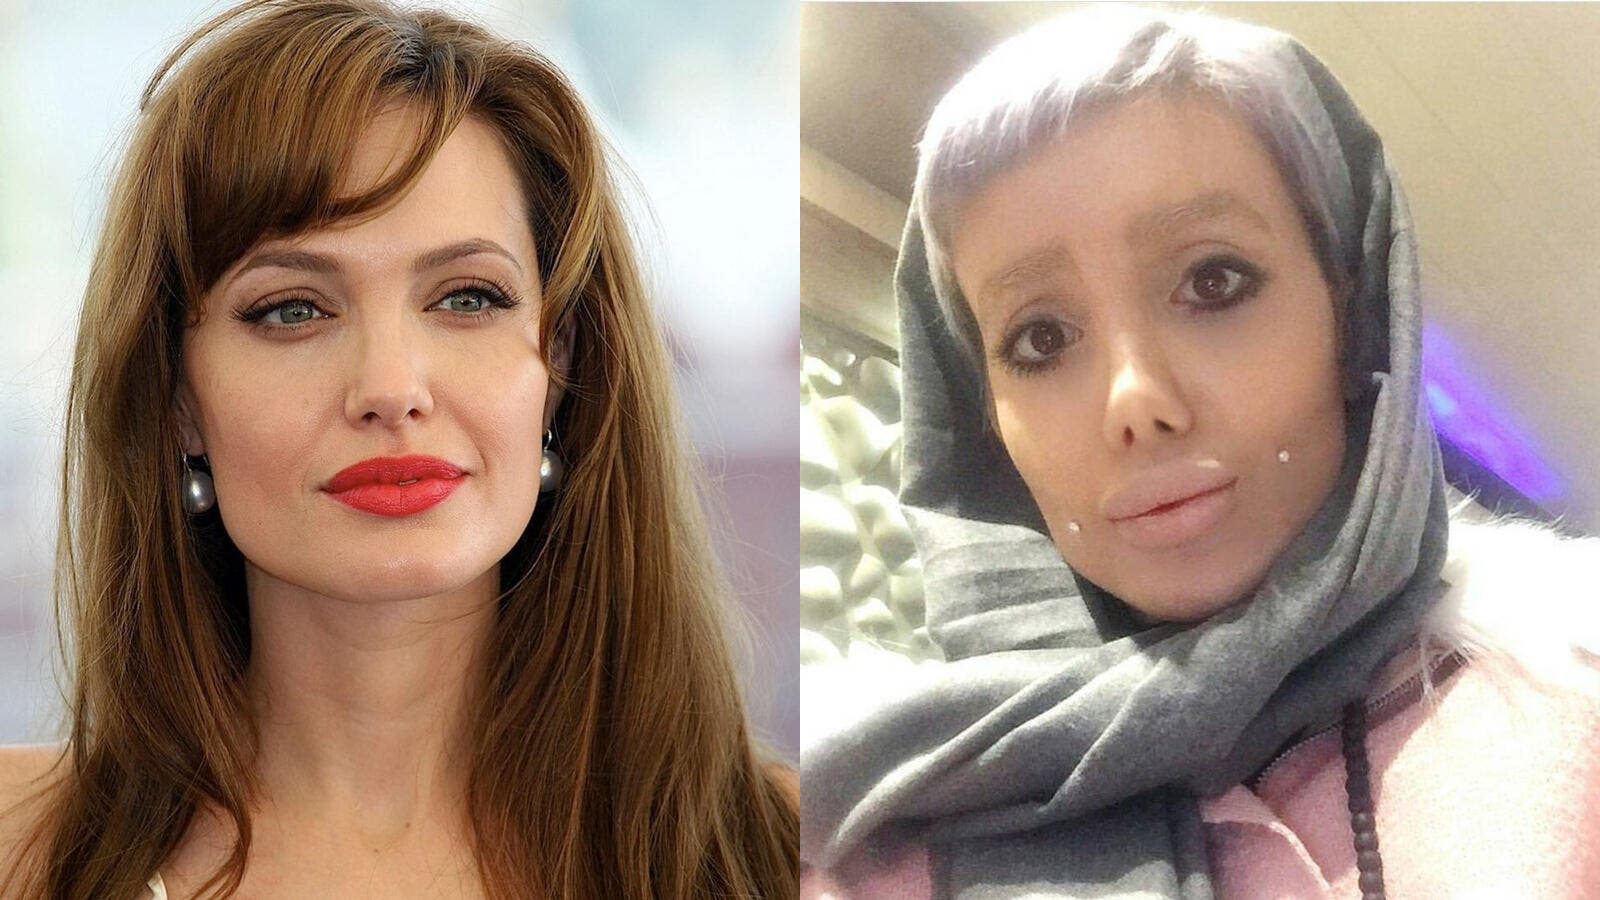 Angelina Jolie Porn Look A Like angelina jolie iranian lookalike arrested and faces charges